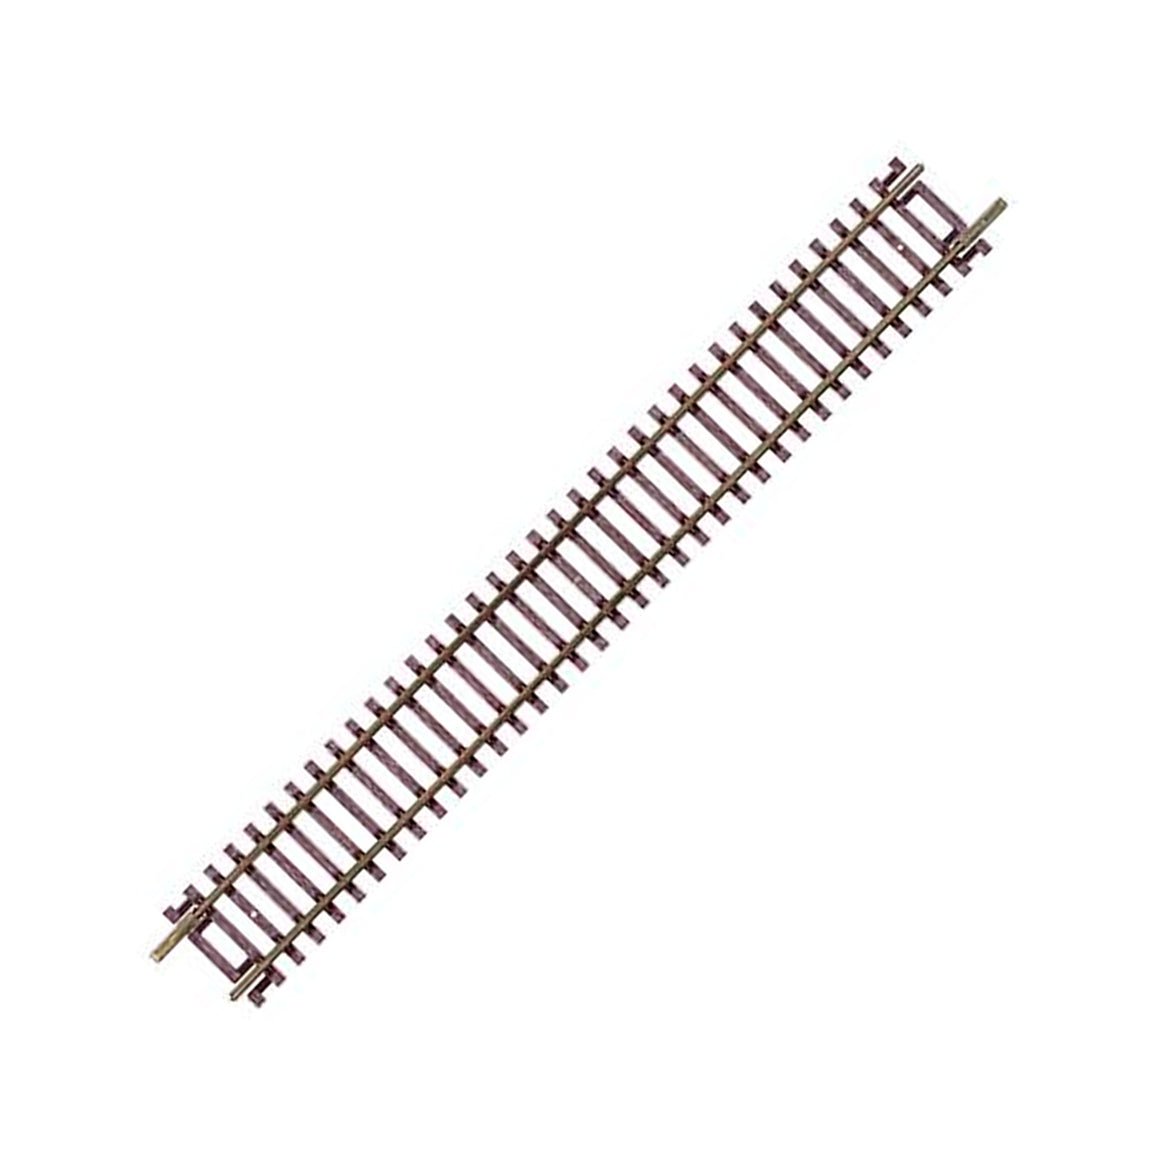 HO Scale: Code 83 Snap Track - 9-inch Sections